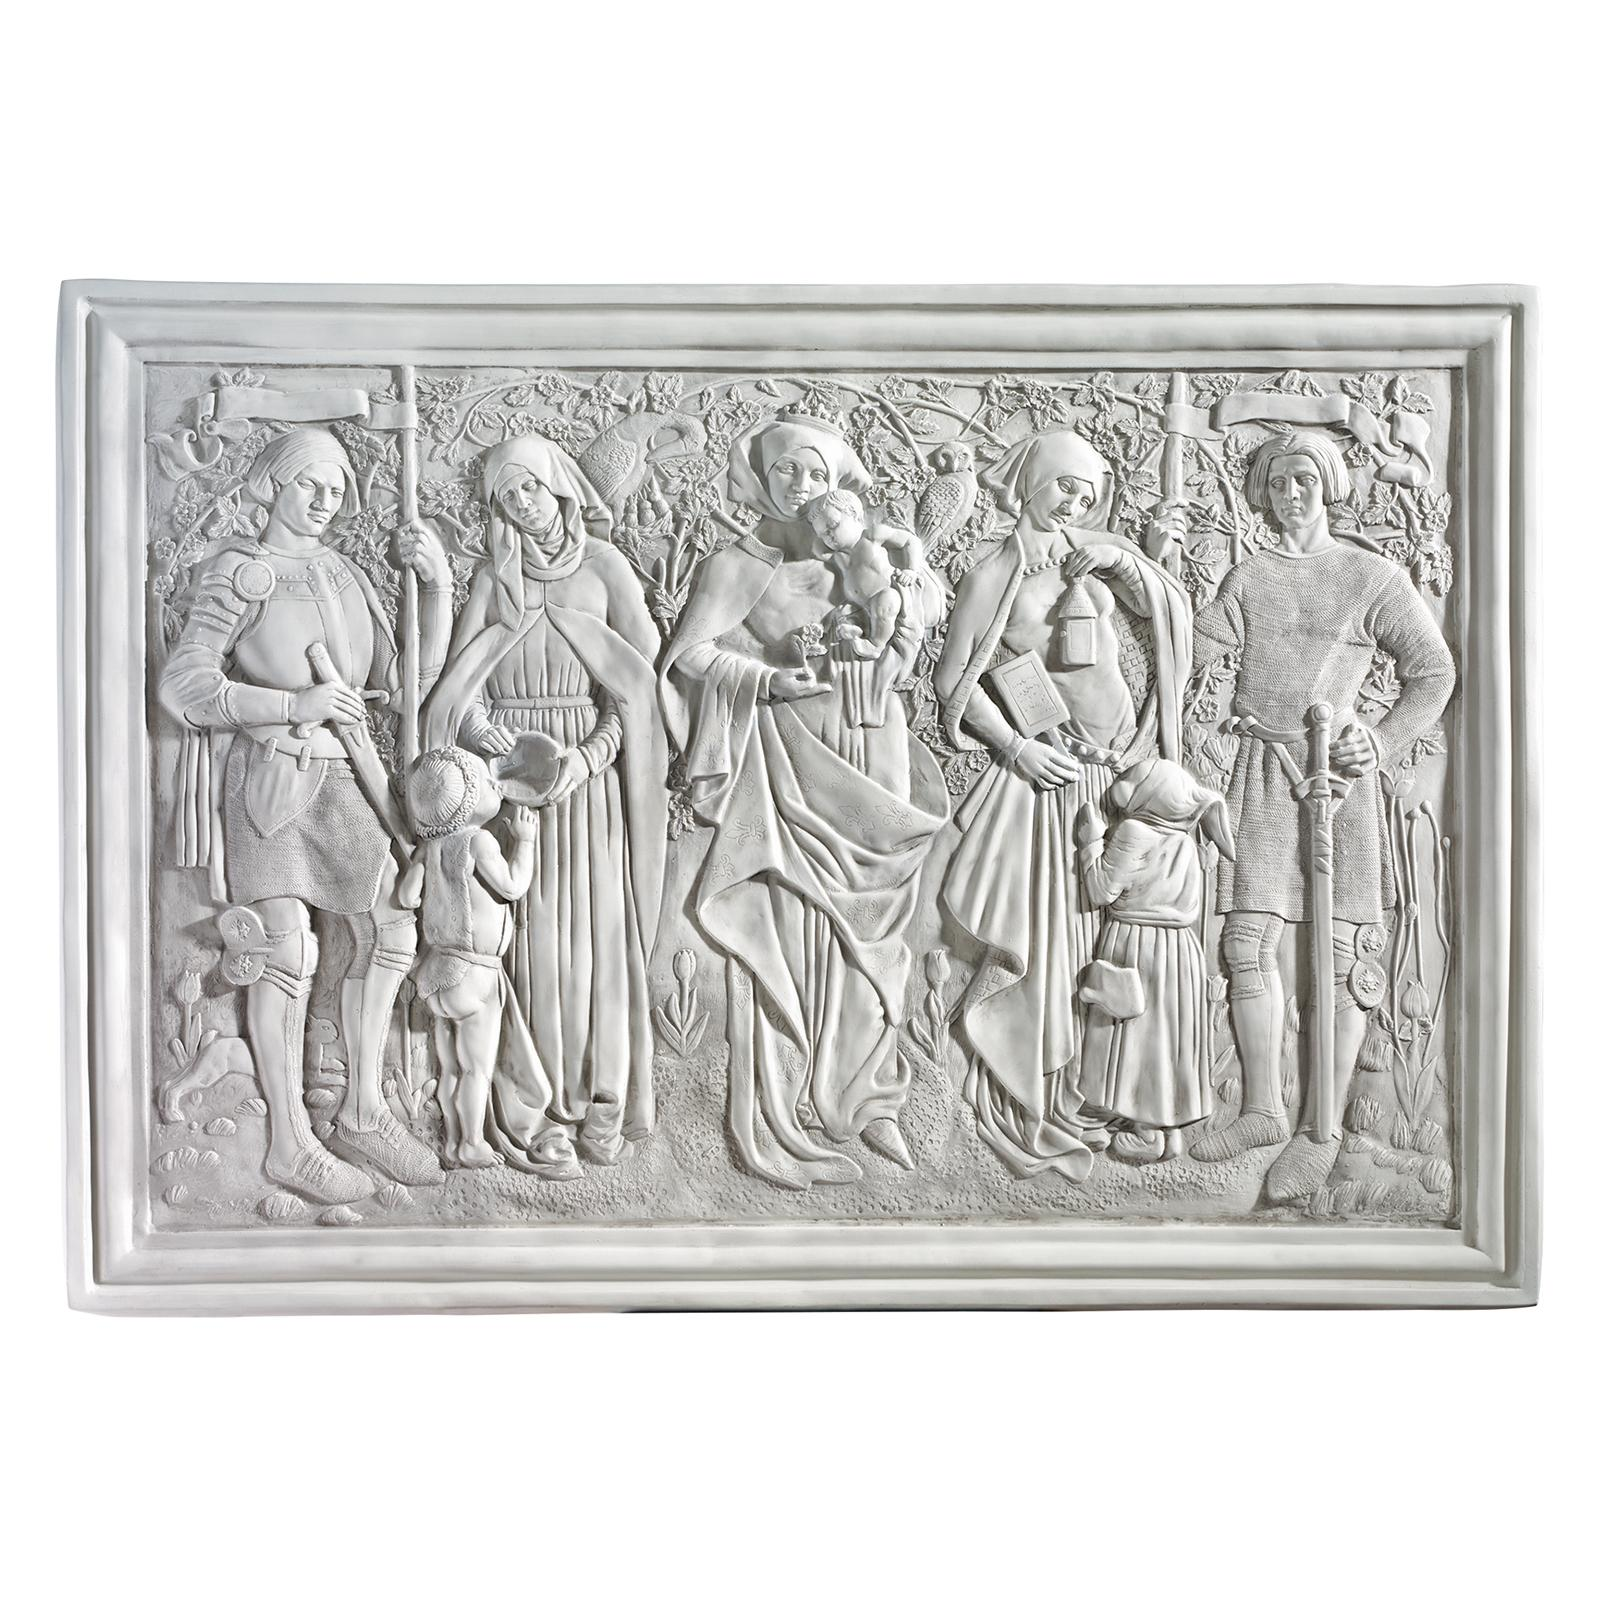 Design Toscano Virtues of Honor Sculptural Wall Frieze - ...